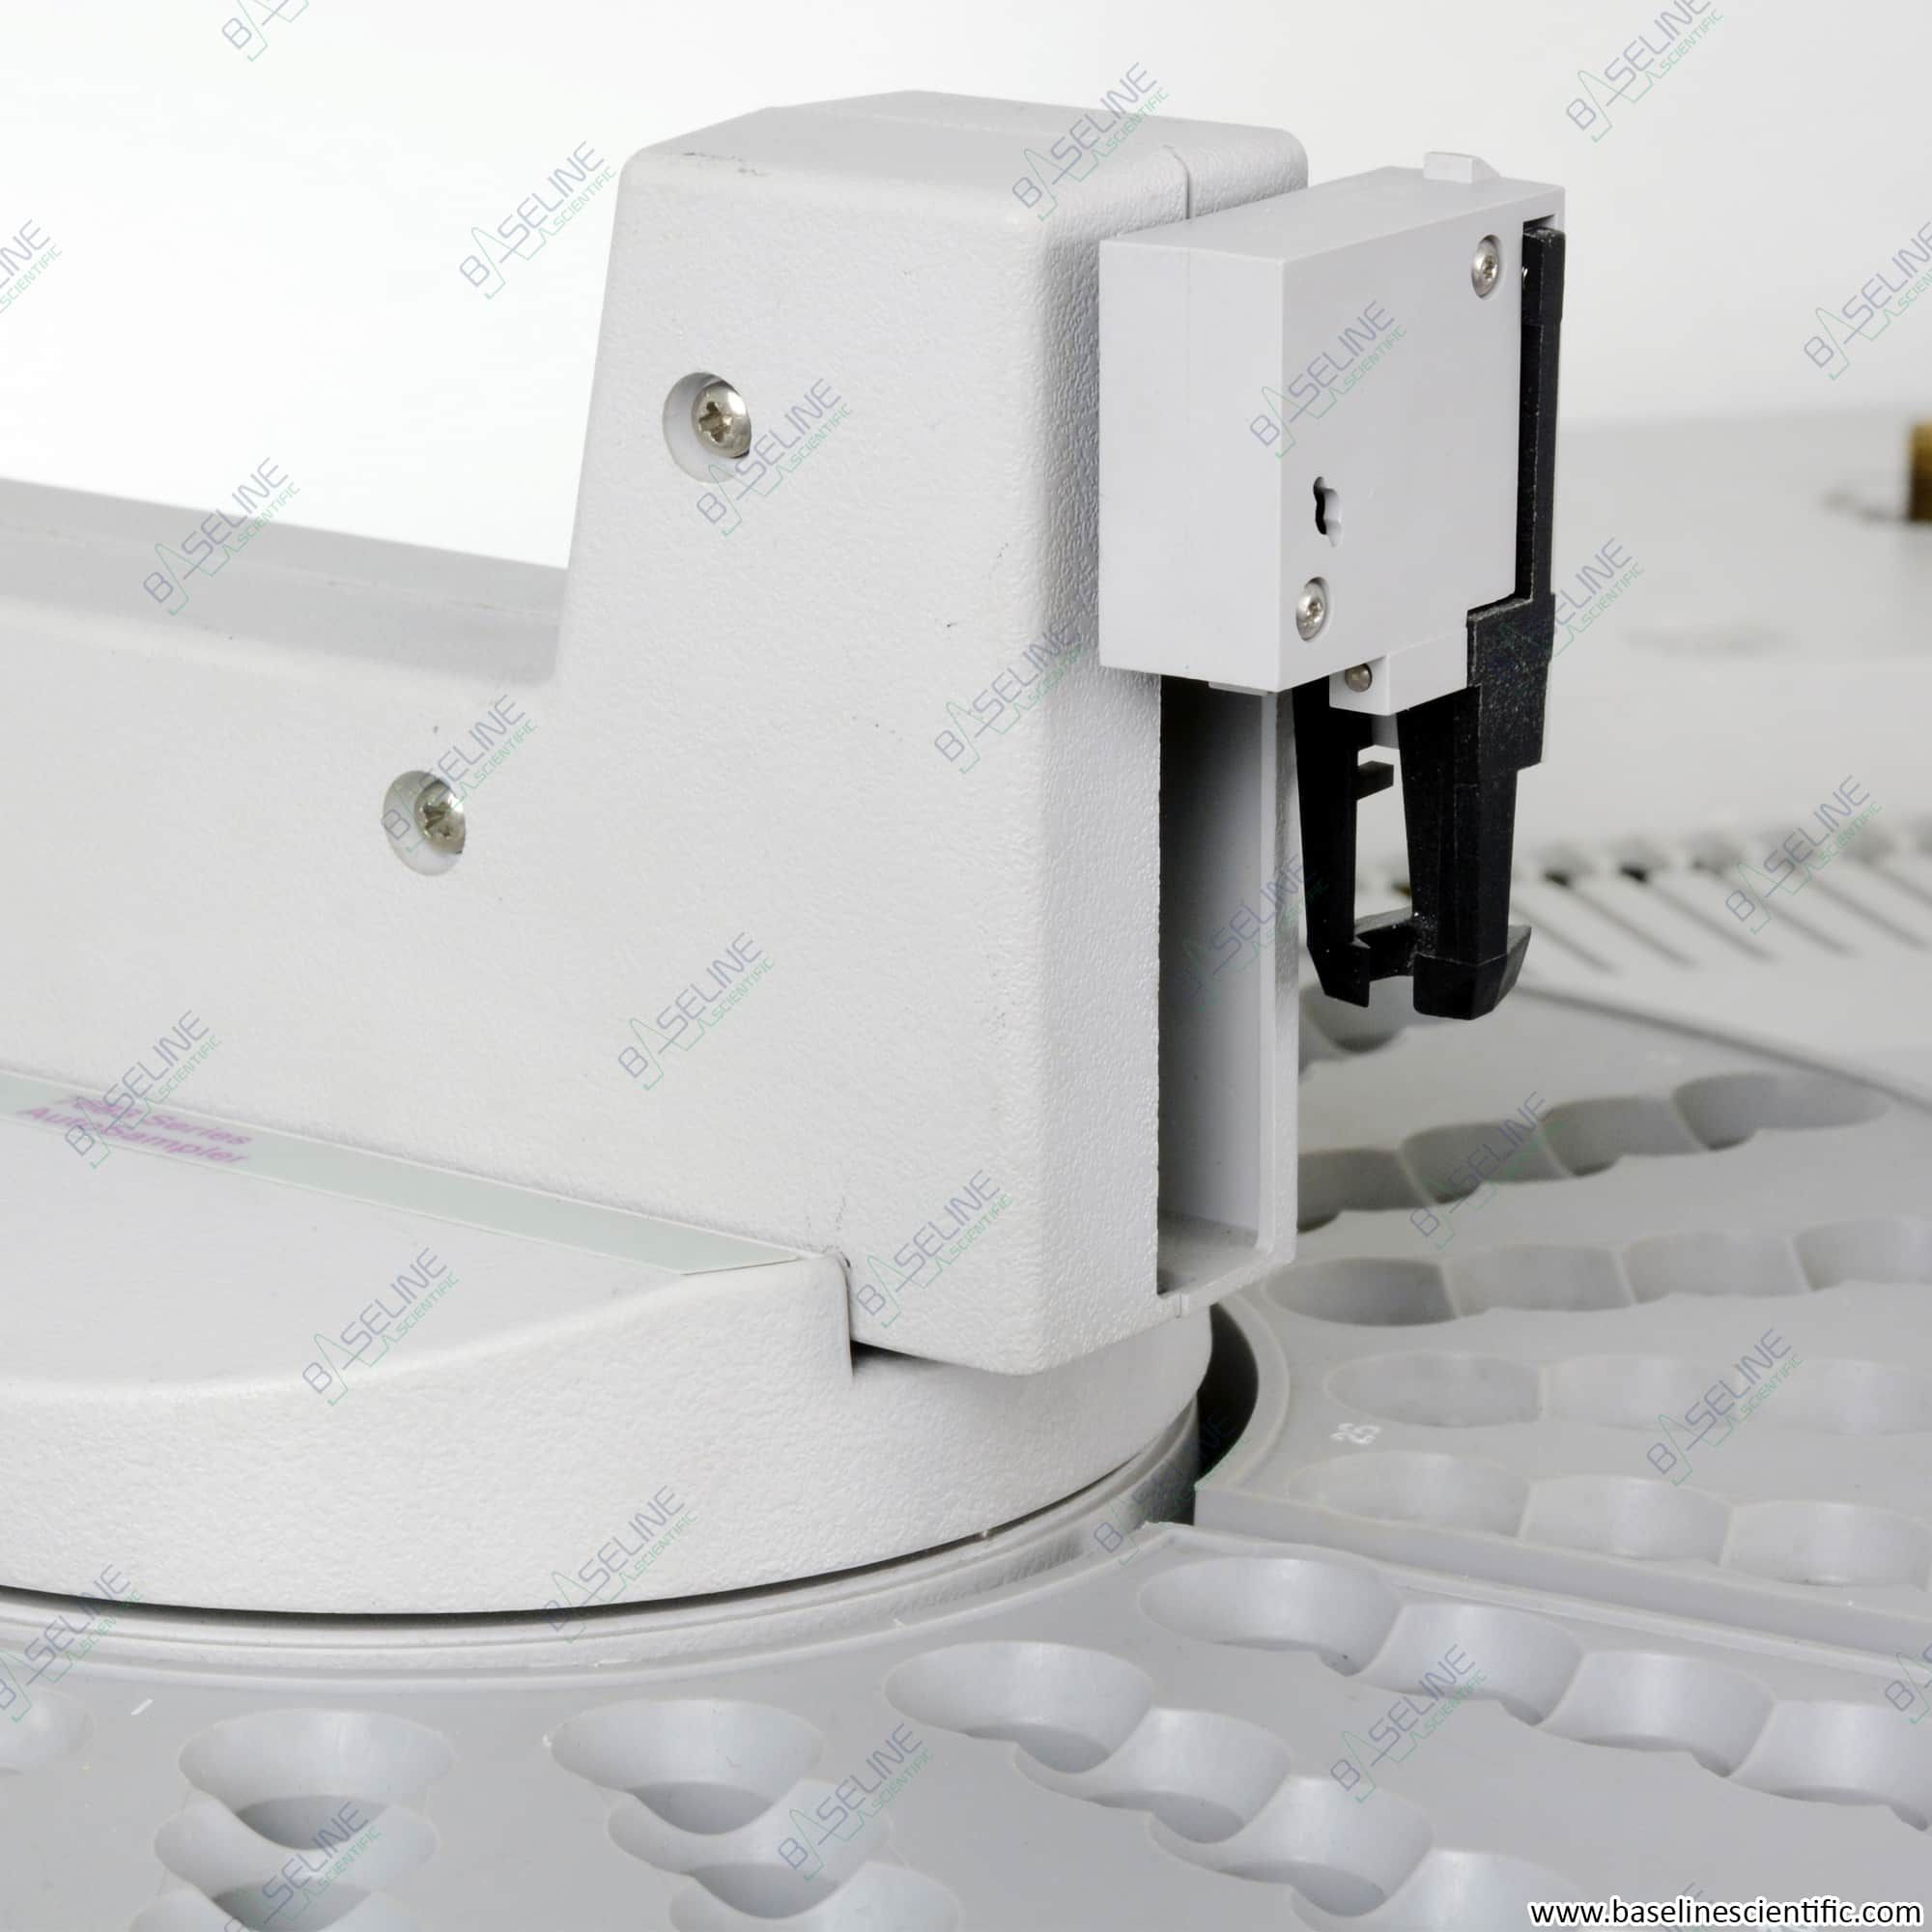 Refurbished Agilent 6890 GC with Single SSL FID and 7683 Series Autosampler